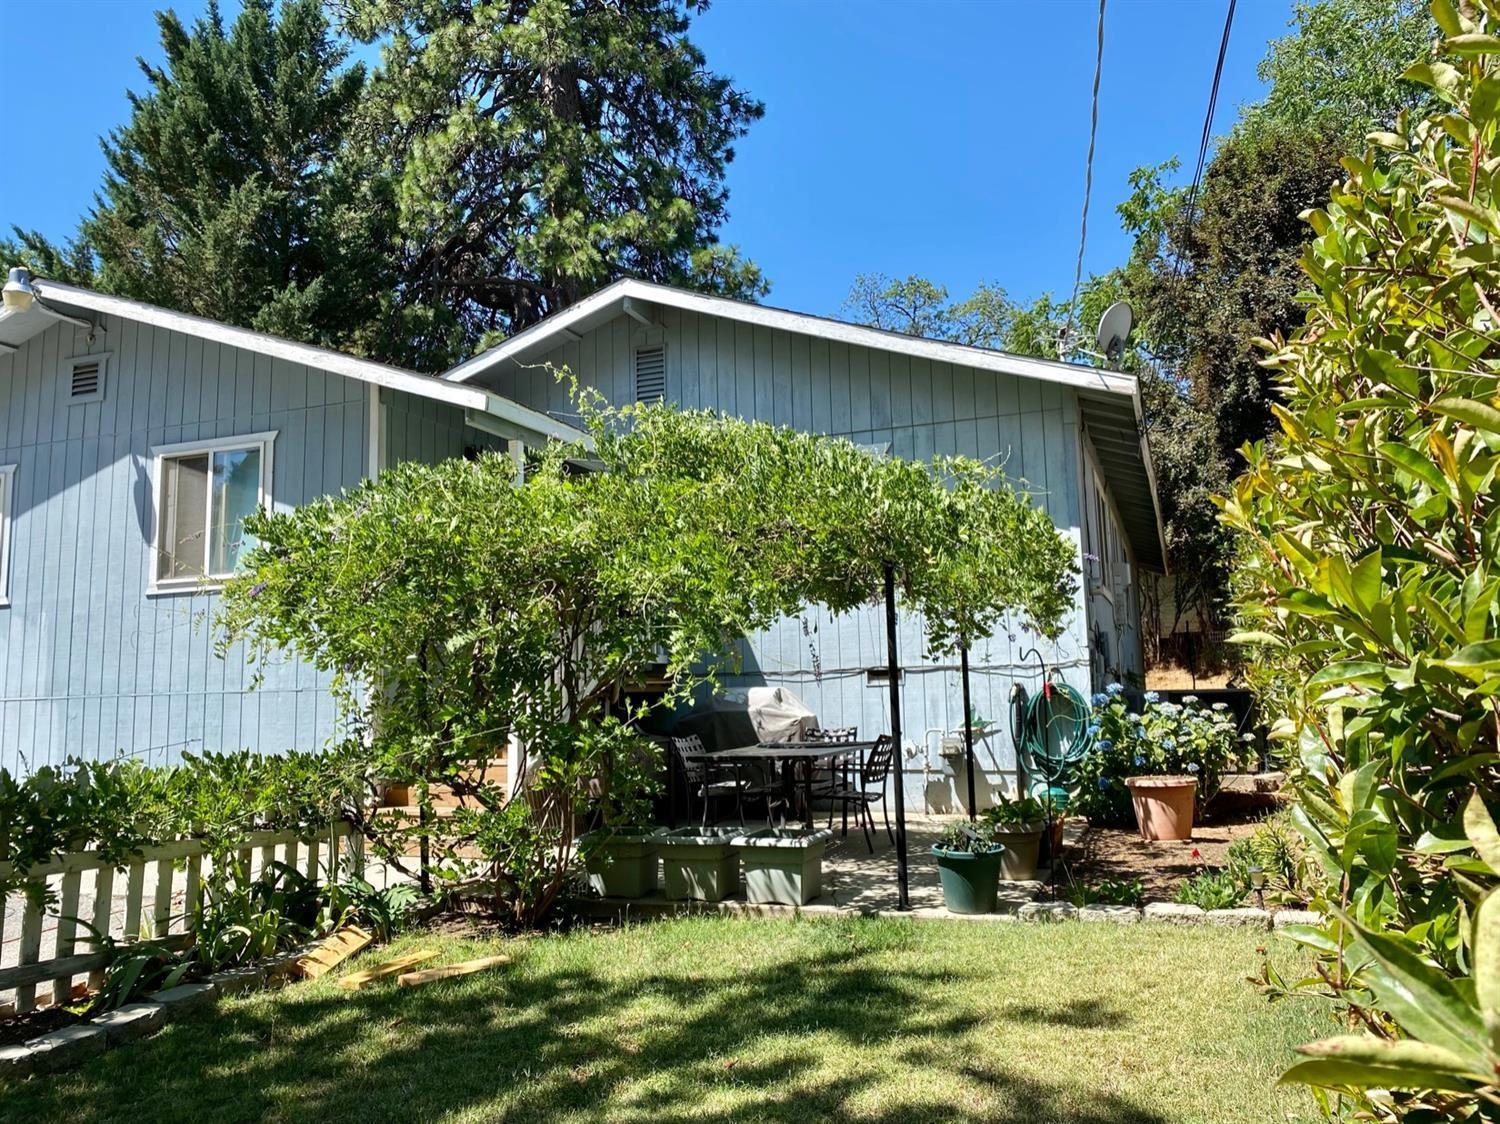 516 Whiting, Grass Valley, CA 95945 - MLS#: 221038082